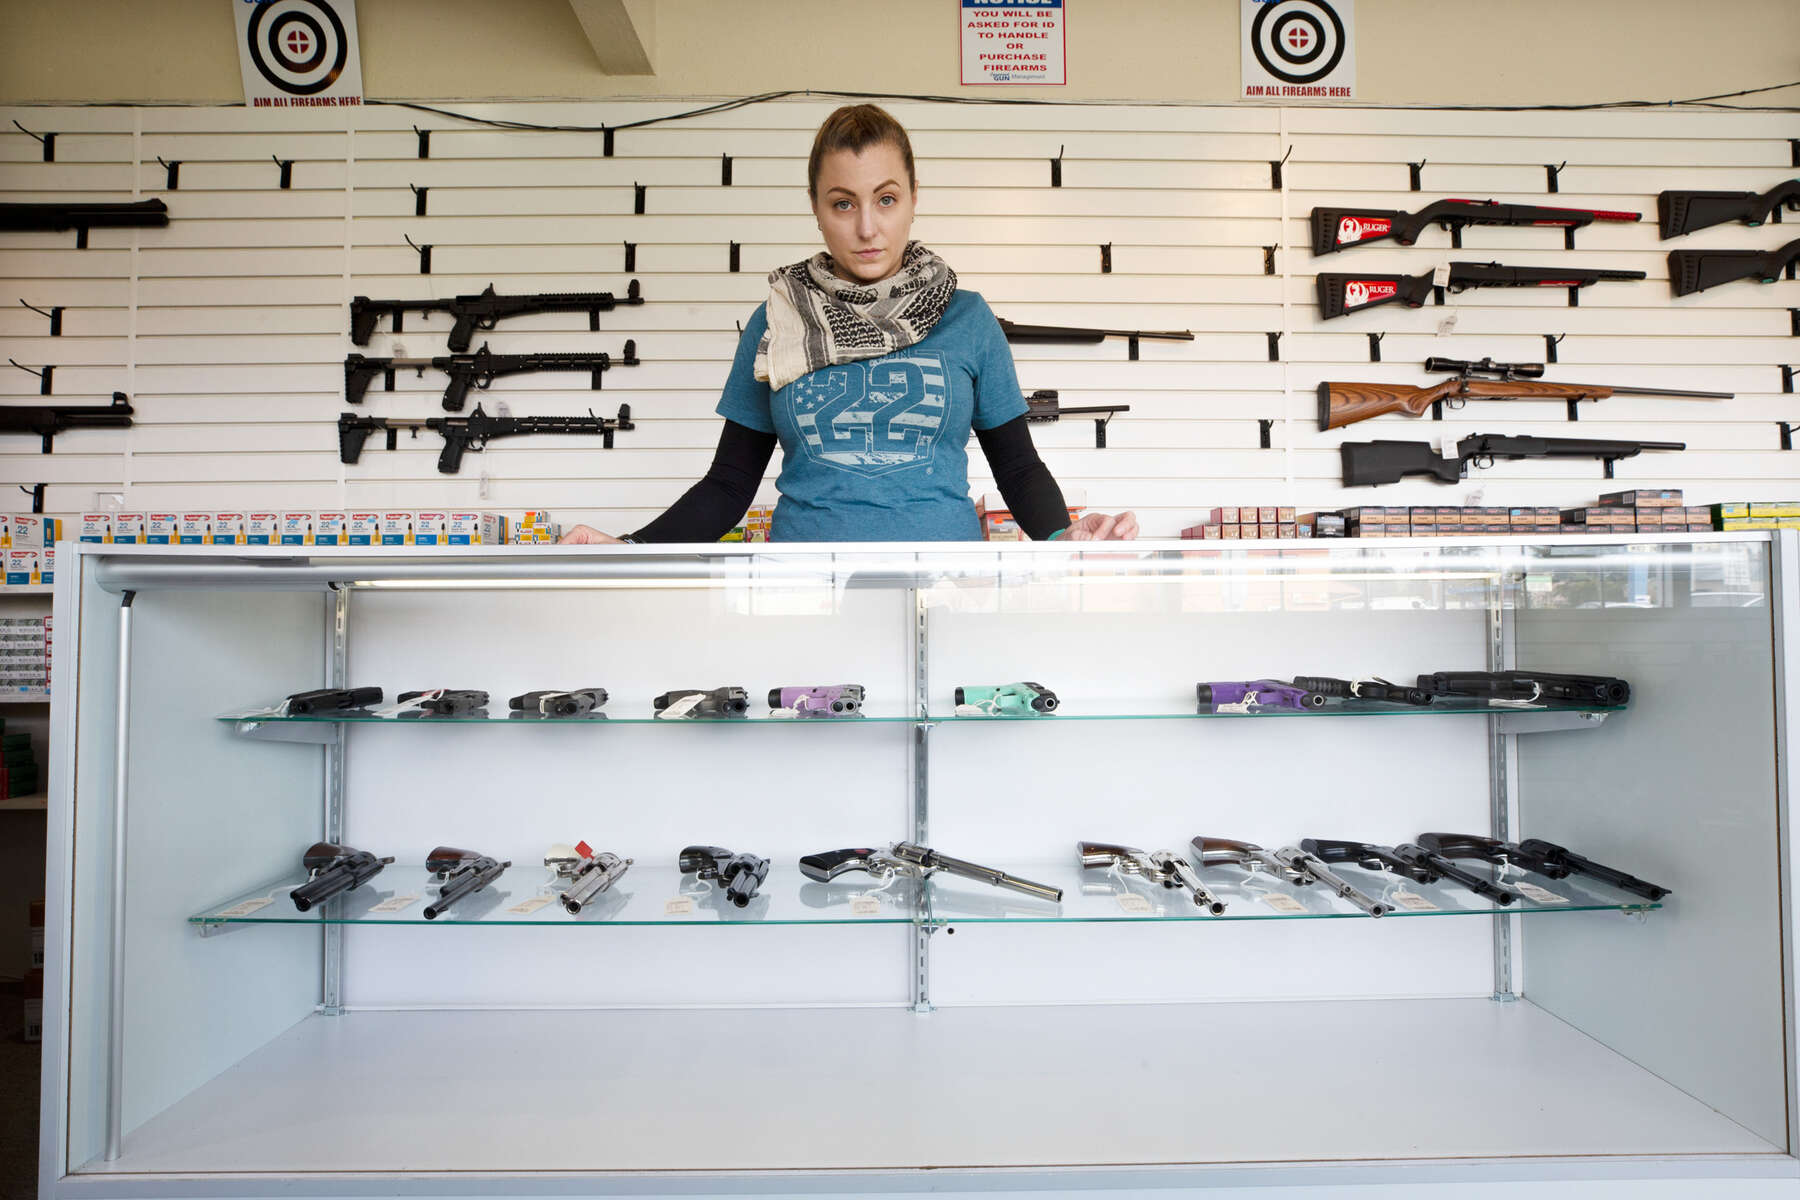 LYNNWOOD, WA - APRIL 02: Tiffany Teasdale, owner of Lynnwood Gun, says guns and ammo have been flying off the shelves, as she stands in front of empty gun racks on April 2, 2020 in Lynnwood, Washington. Washington State Governor Jay Inslee did not list gun stores as essential businesses that can stay open in his Stay-at-Home order to prevent the spread of coronavirus (COVID-19). However, Teasdale and some other gun retail shops say they are following orders by President Trump and state Republicans who advise that the firearms industry can remain open. As a result guns and ammunition has been Second Amendment gun rights advocacy groups are challenging governor's orders around the country to remain open. (Photo by Karen Ducey/Getty Images)